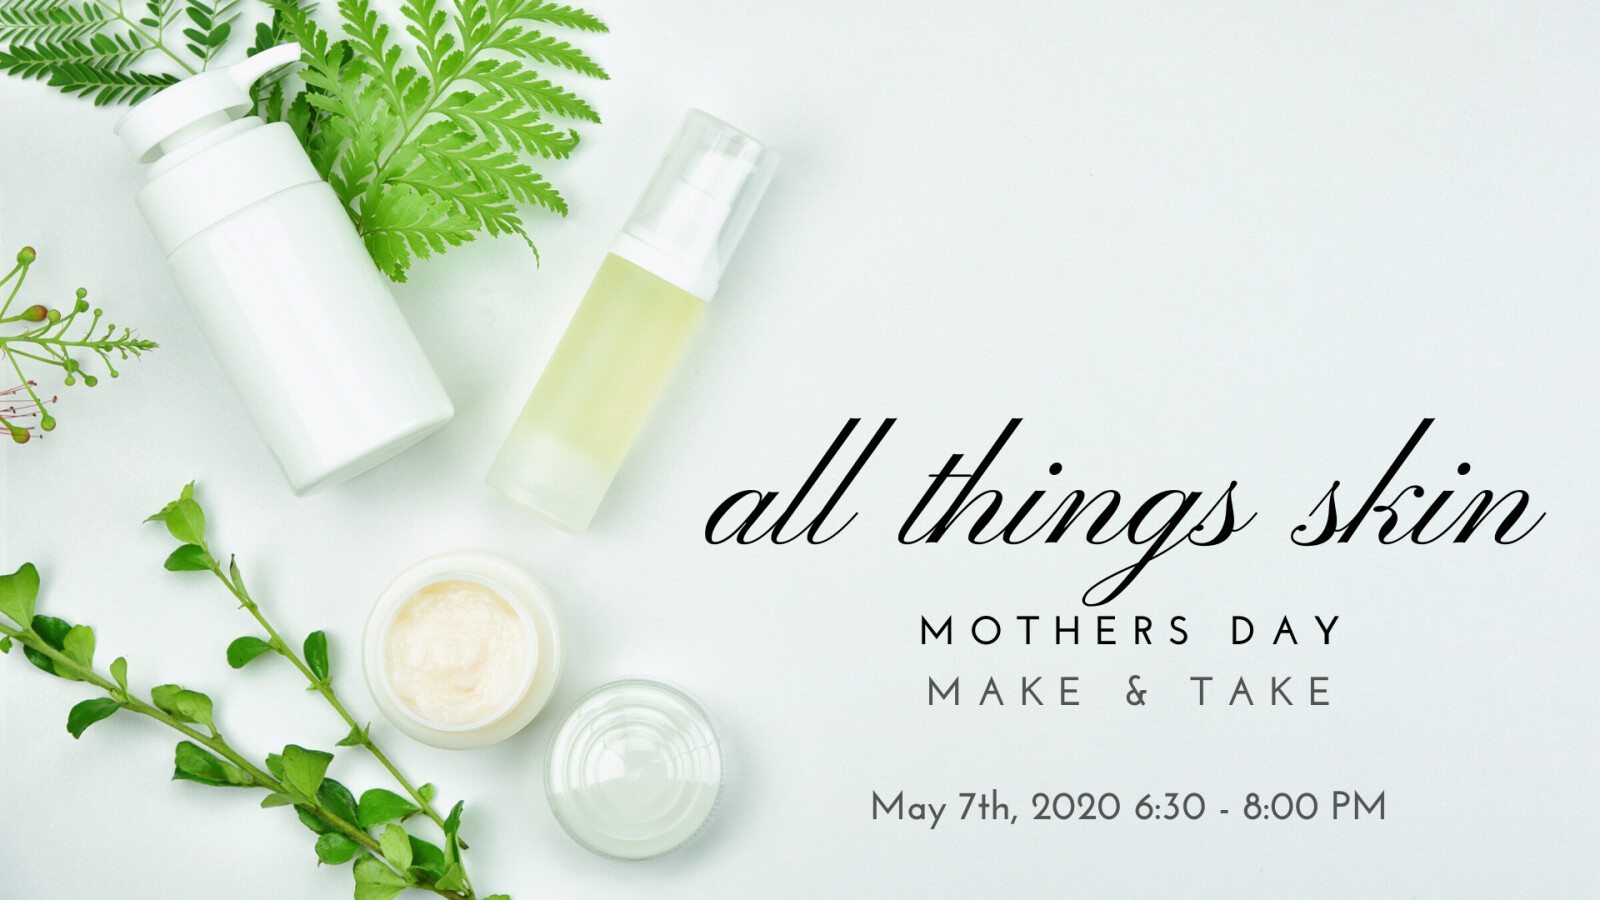 The Skin You're In - Mother's Day Make & Take